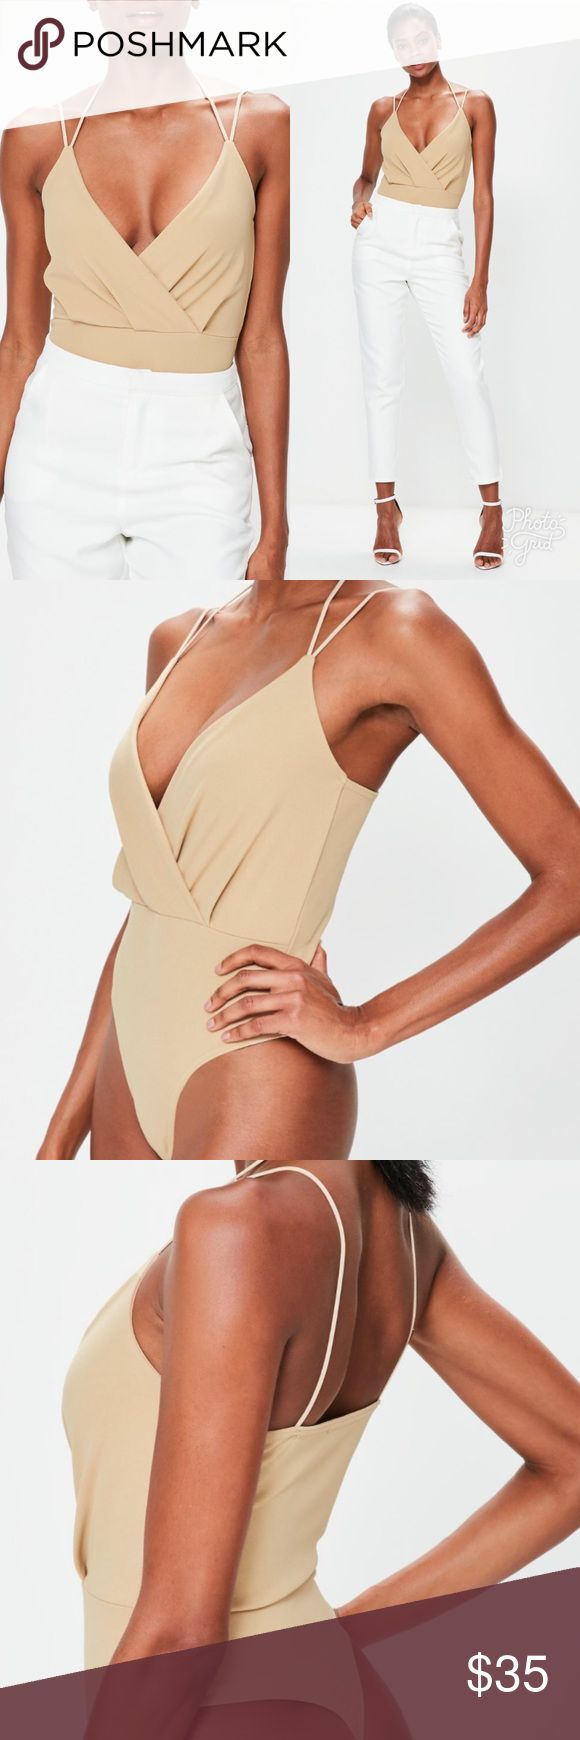 """Nude Bodysuit New with tags! Never worn. Selling due to the color not flattering with my skin tone. Regular fit - popper fasten at the gusset, 95% polyester 5% elastane. Approx length: 64cm/25"""" (based on a uk size 8 sample). The model wears a uk size 8 / eu size 36 / us size 4. Size of item being sold is a size 4. No stains or tears. Comes from a smoke-free home. Missguided Tops"""